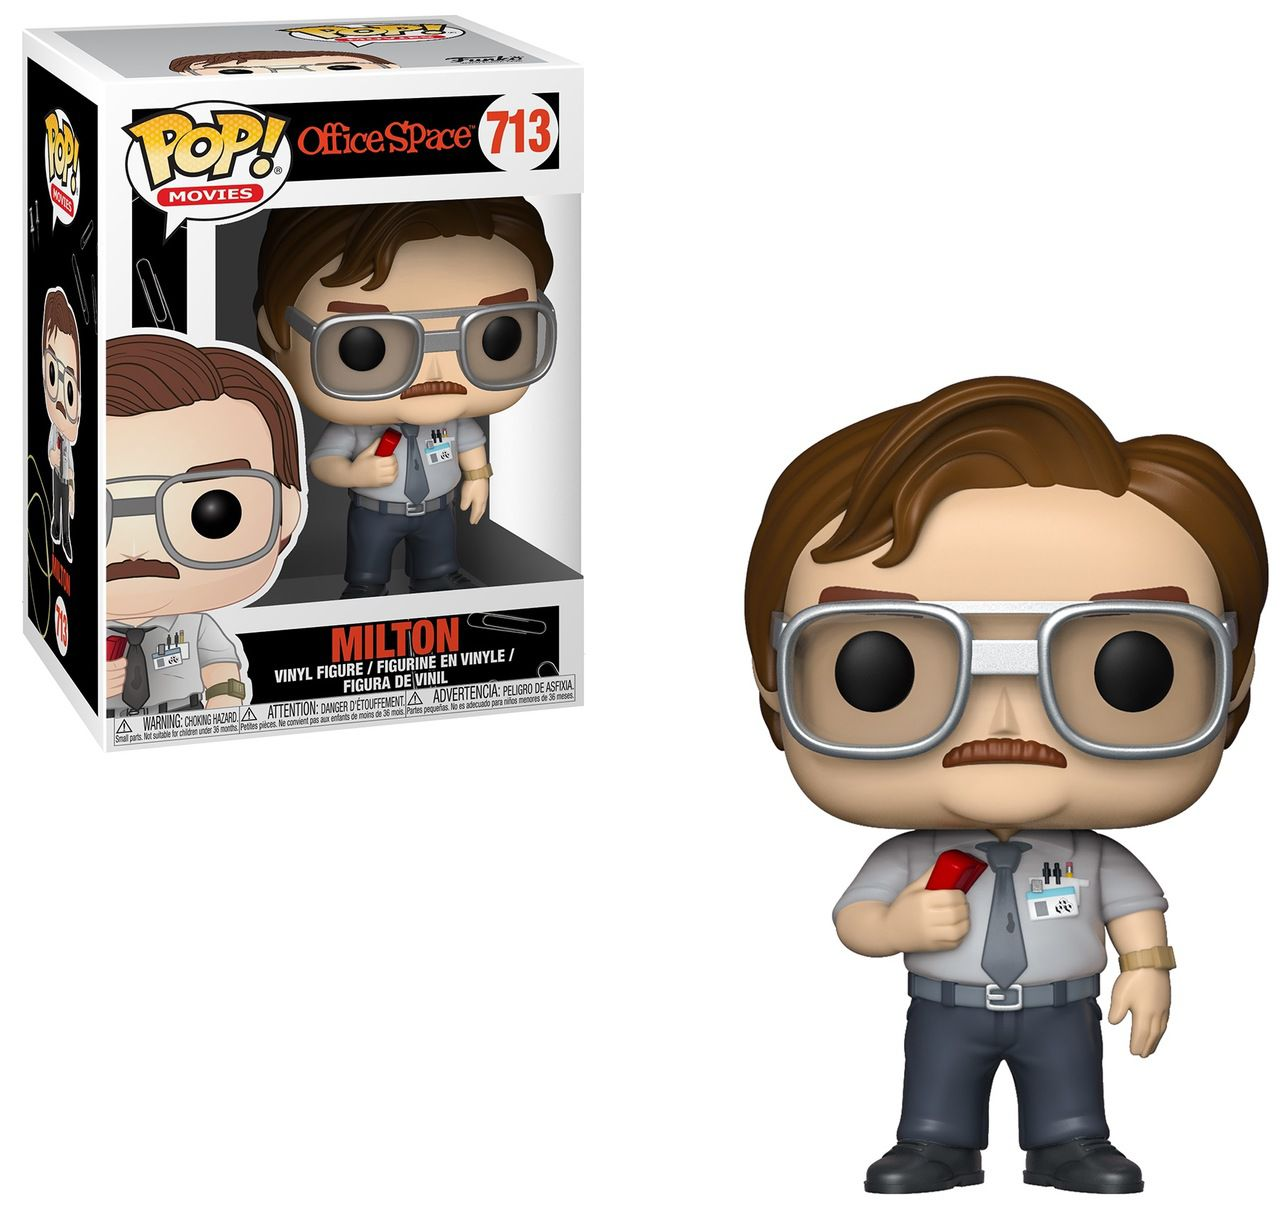 Funko Pop! Milton Waddams: Como Enlouquecer Seu Chefe (Office Space) #713 - Funko